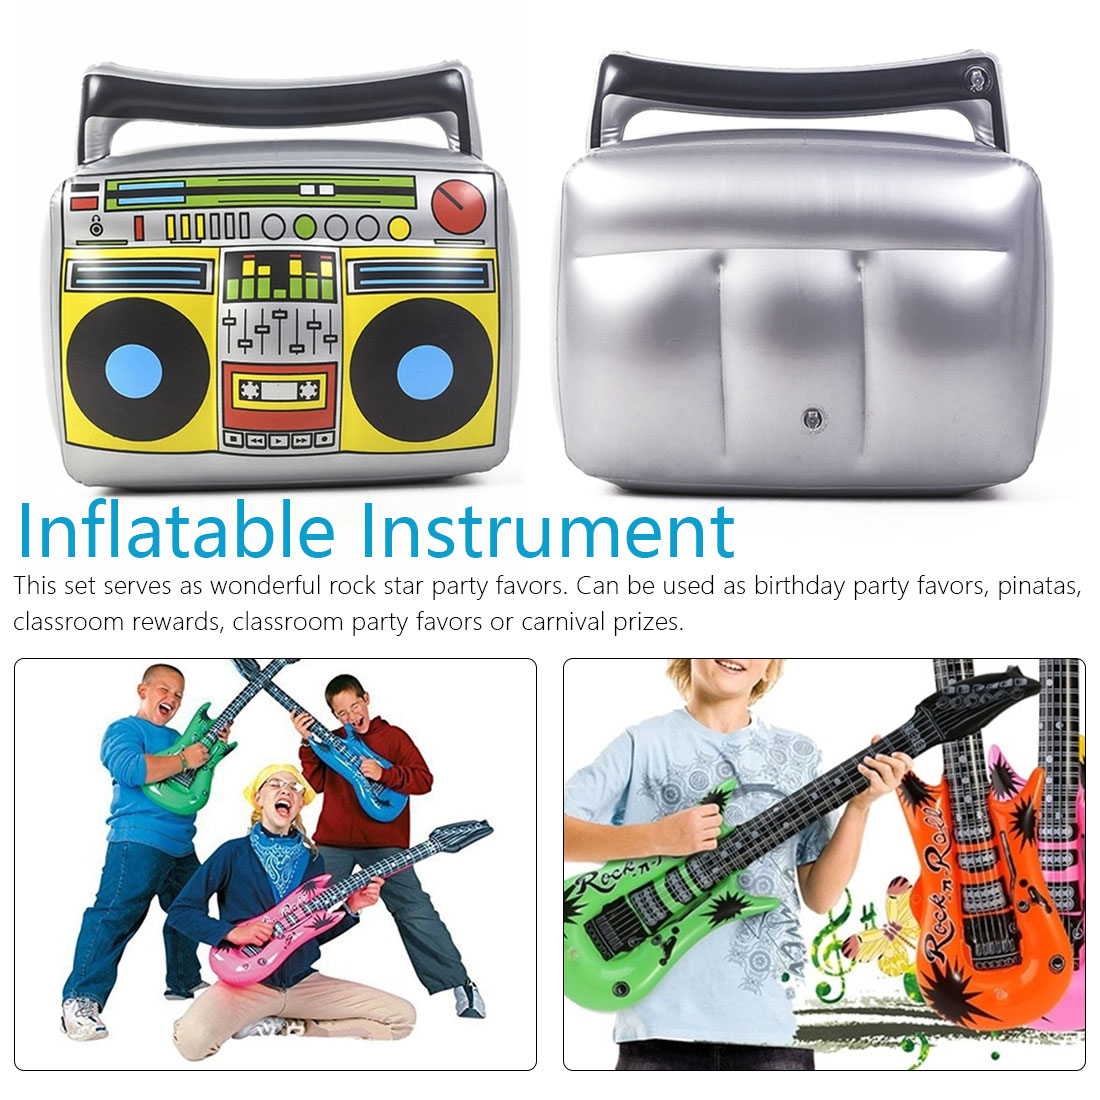 Inflatable Musical Toy Instruments Toy Inflatable Microphone Radio Decoration Props Roll Party Supplies